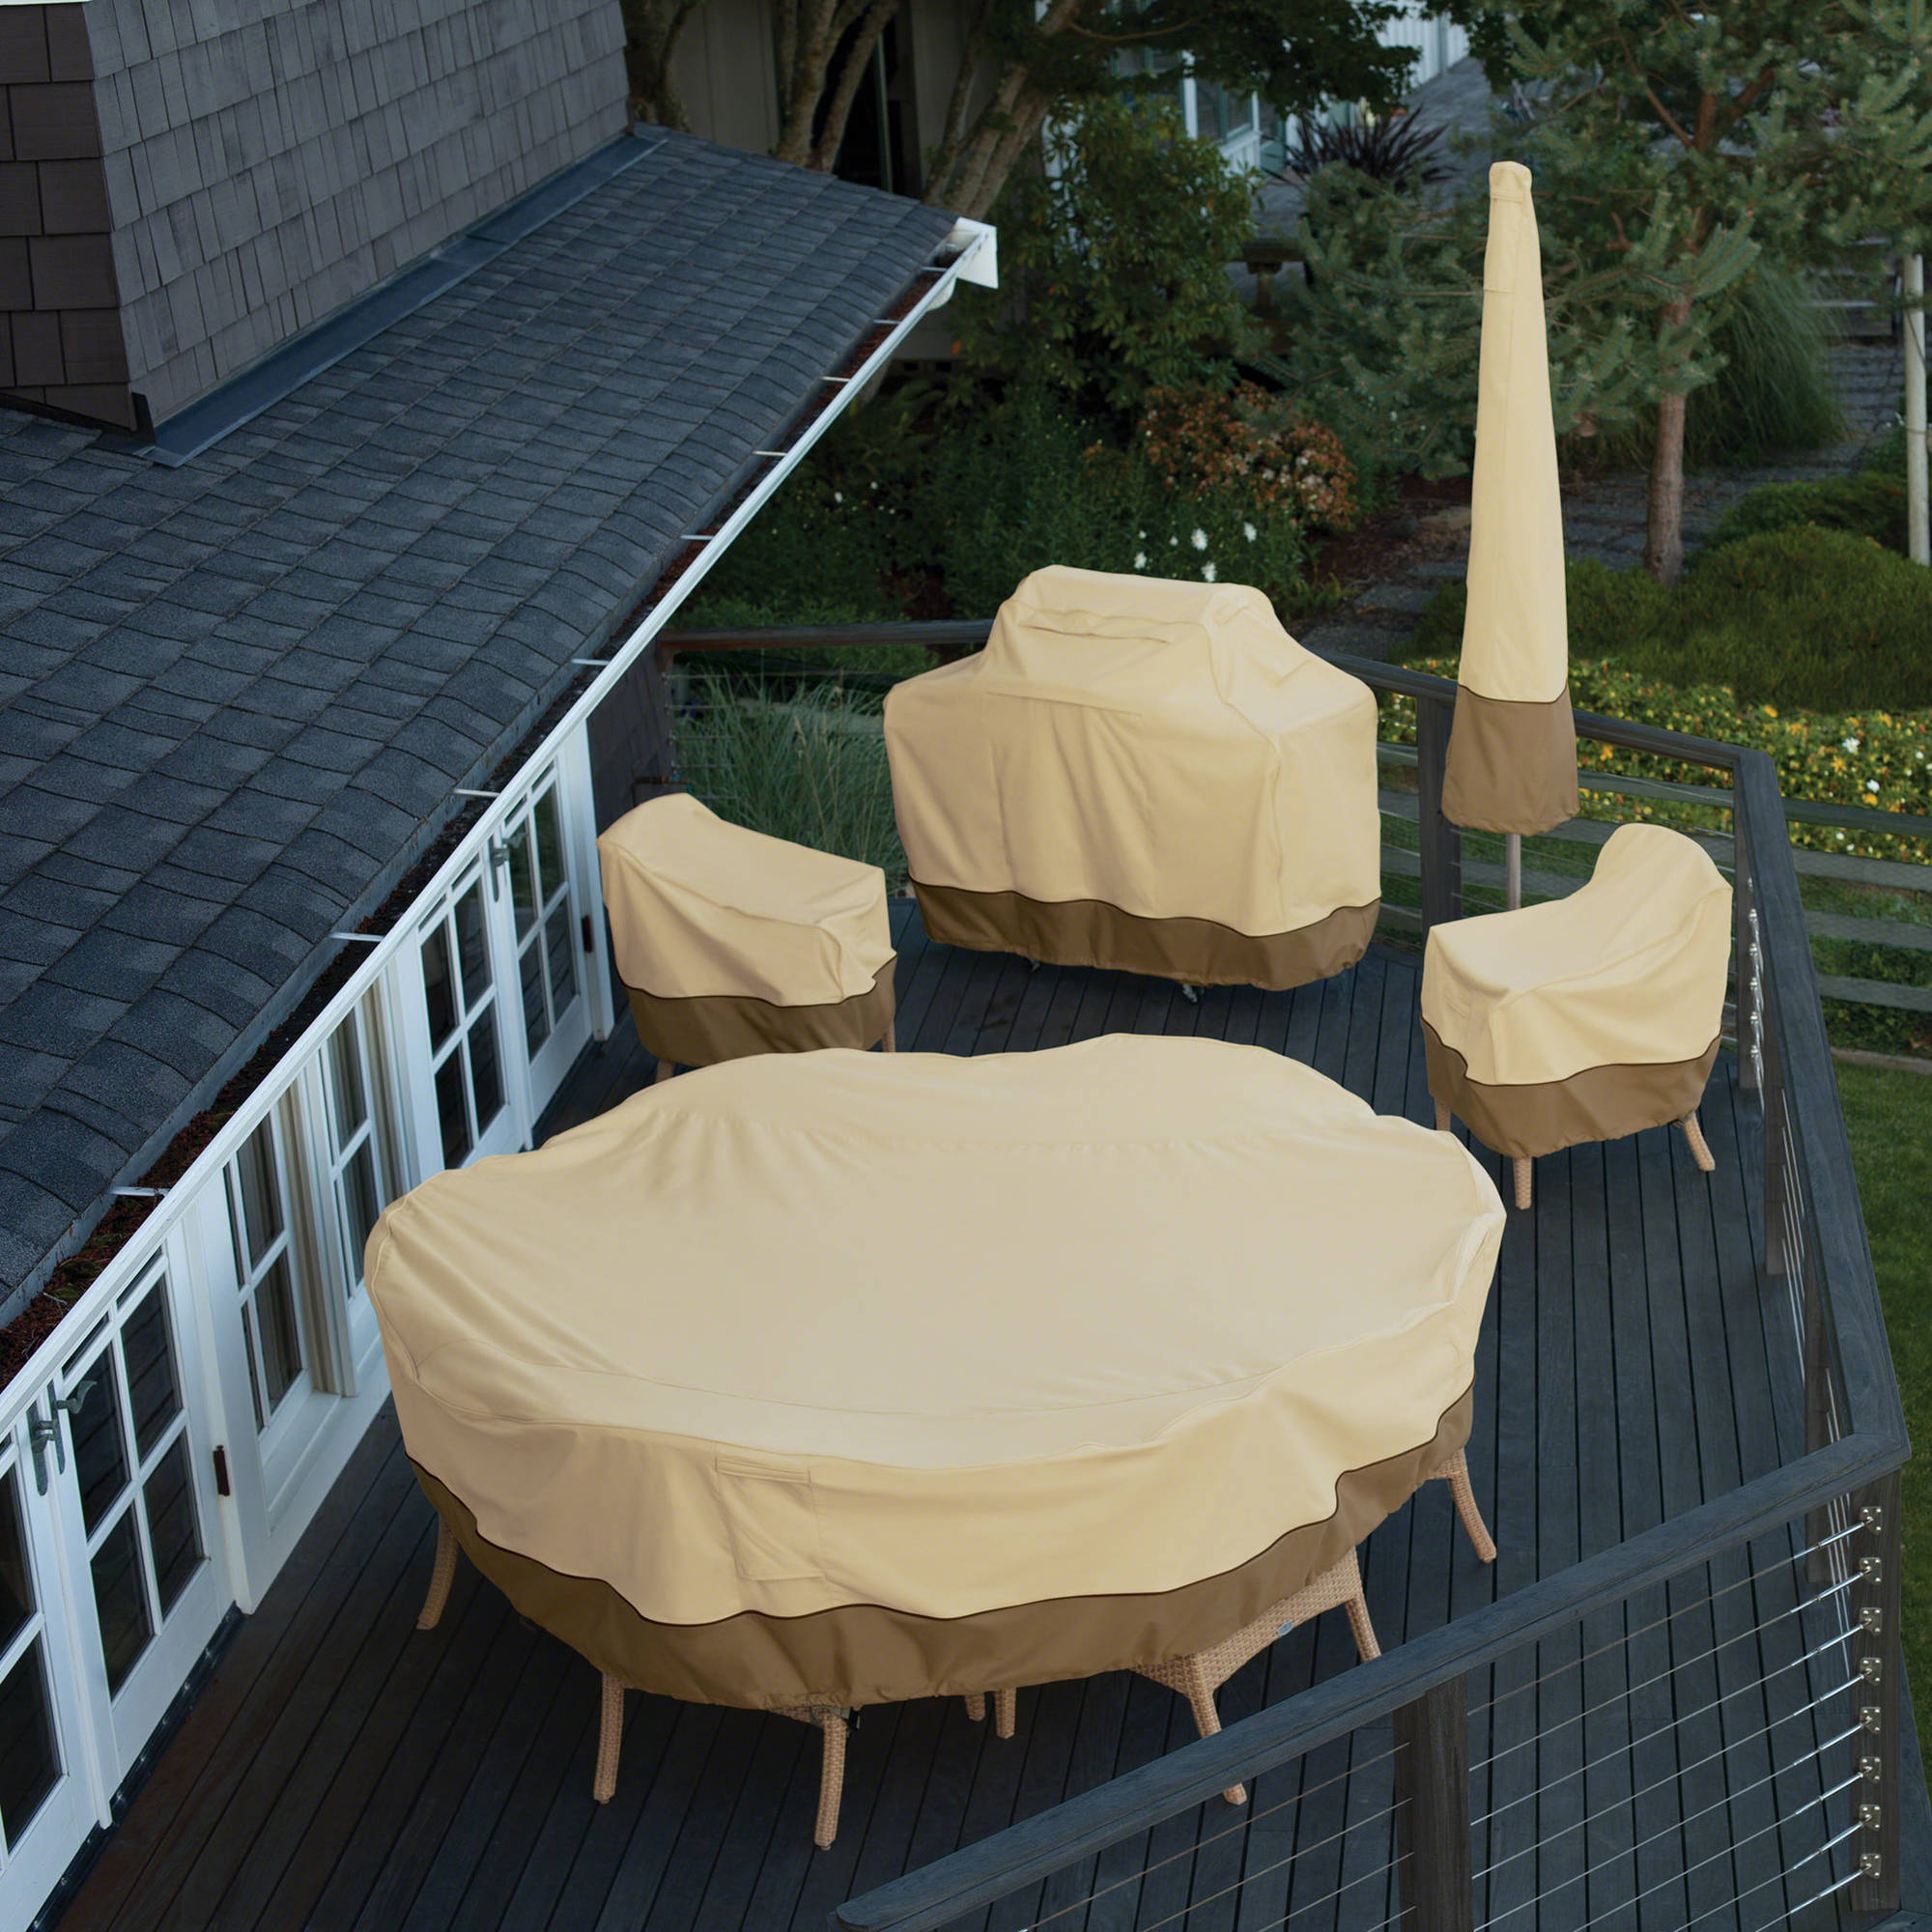 Clic Accessories Veranda Tall Round Patio Table And Chair Set Furniture Storage Cover Fits Up To 60 Diameter Com